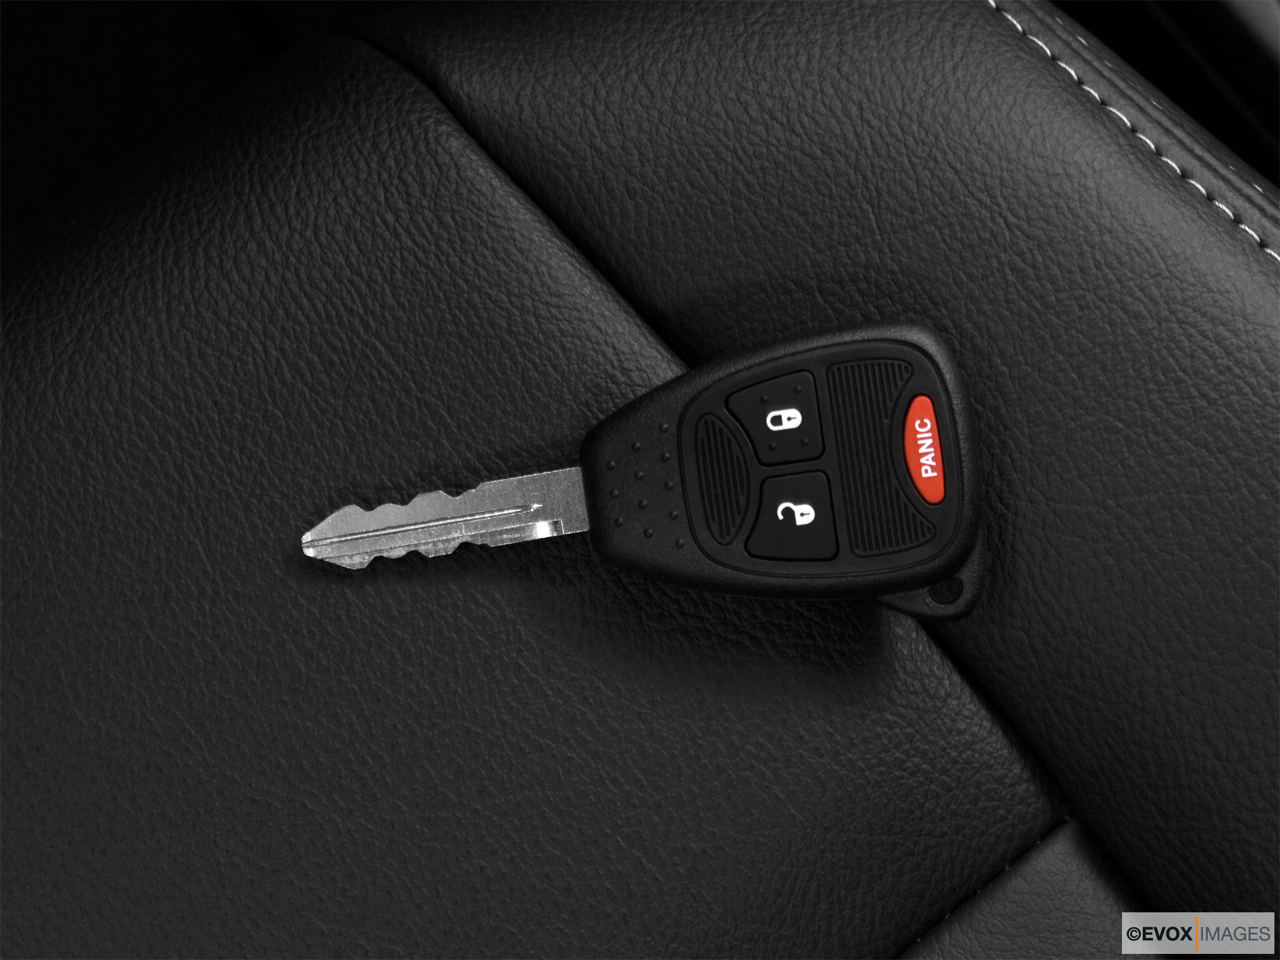 2010 Jeep Patriot Limited Key fob on driver's seat.